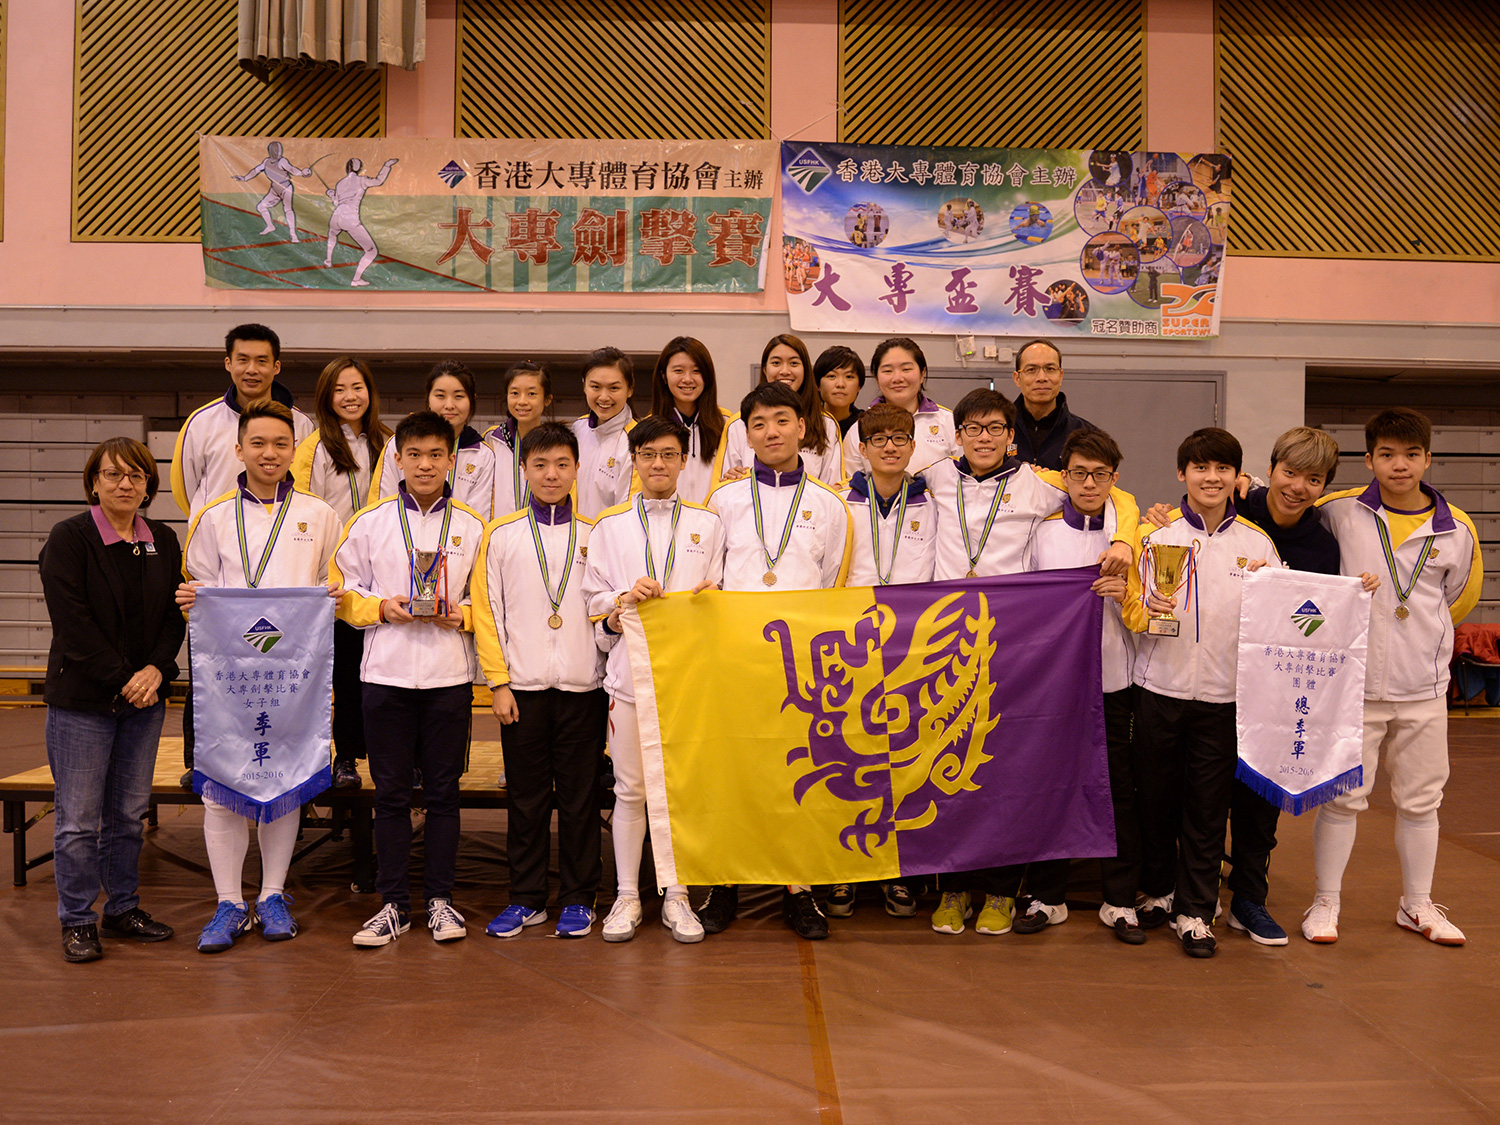 Team photos at USFHK Fencing Competition 2016